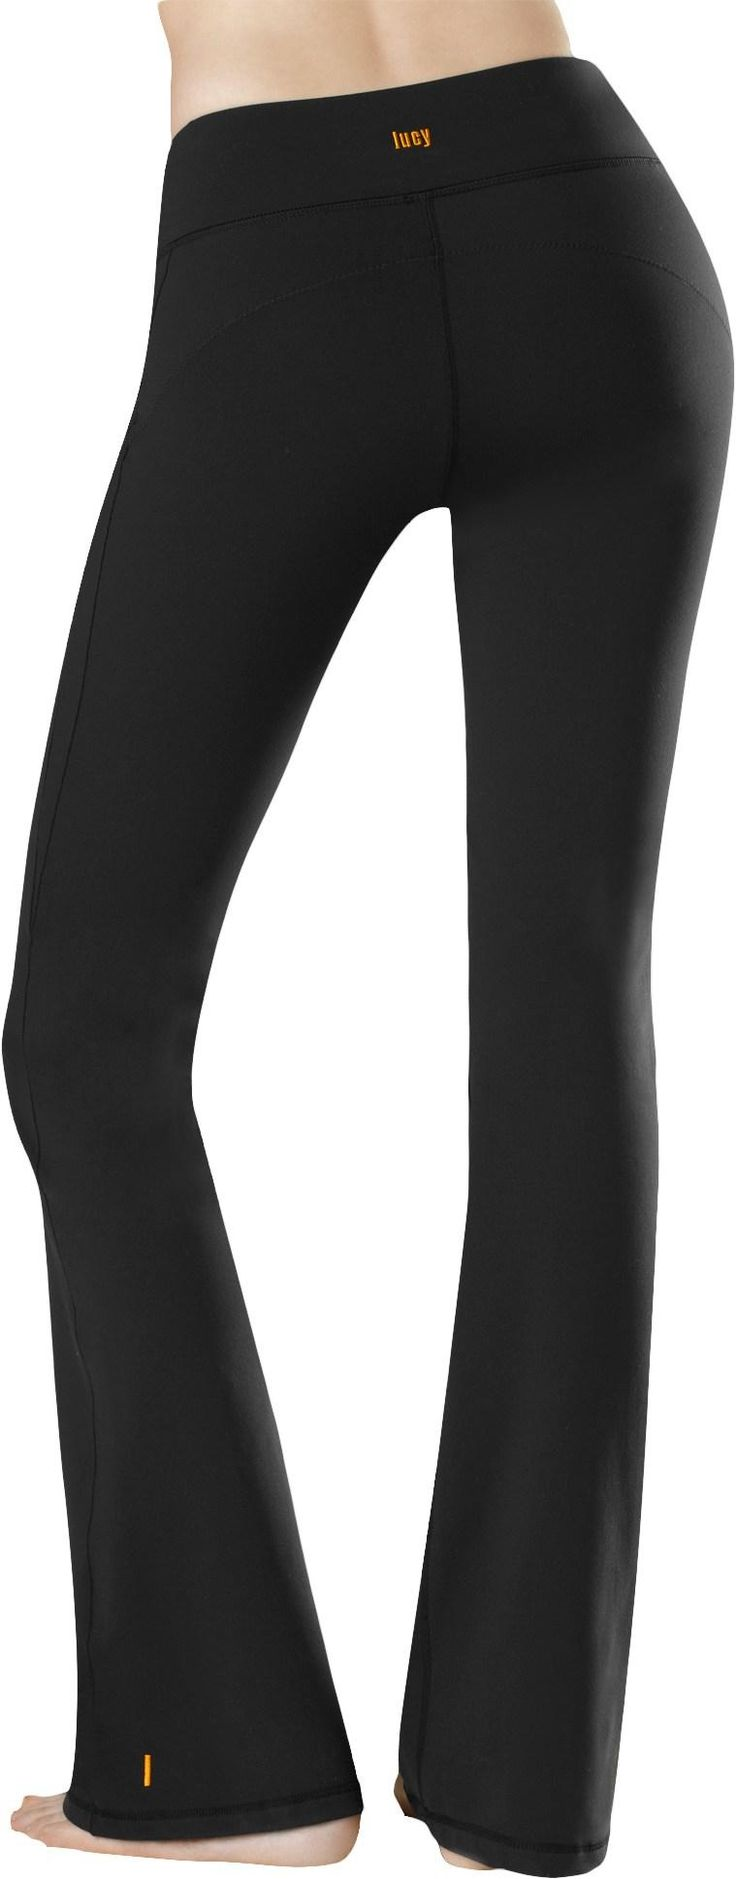 The Lucy Perfect Core Capris Help Hide and Battle the jiggle while working out. They've got just the right amount of compression for your workout, without feeling like you're trying to Down Dog in Spanx. Also has anti-chafe seams and moisture-wicking capabilities,